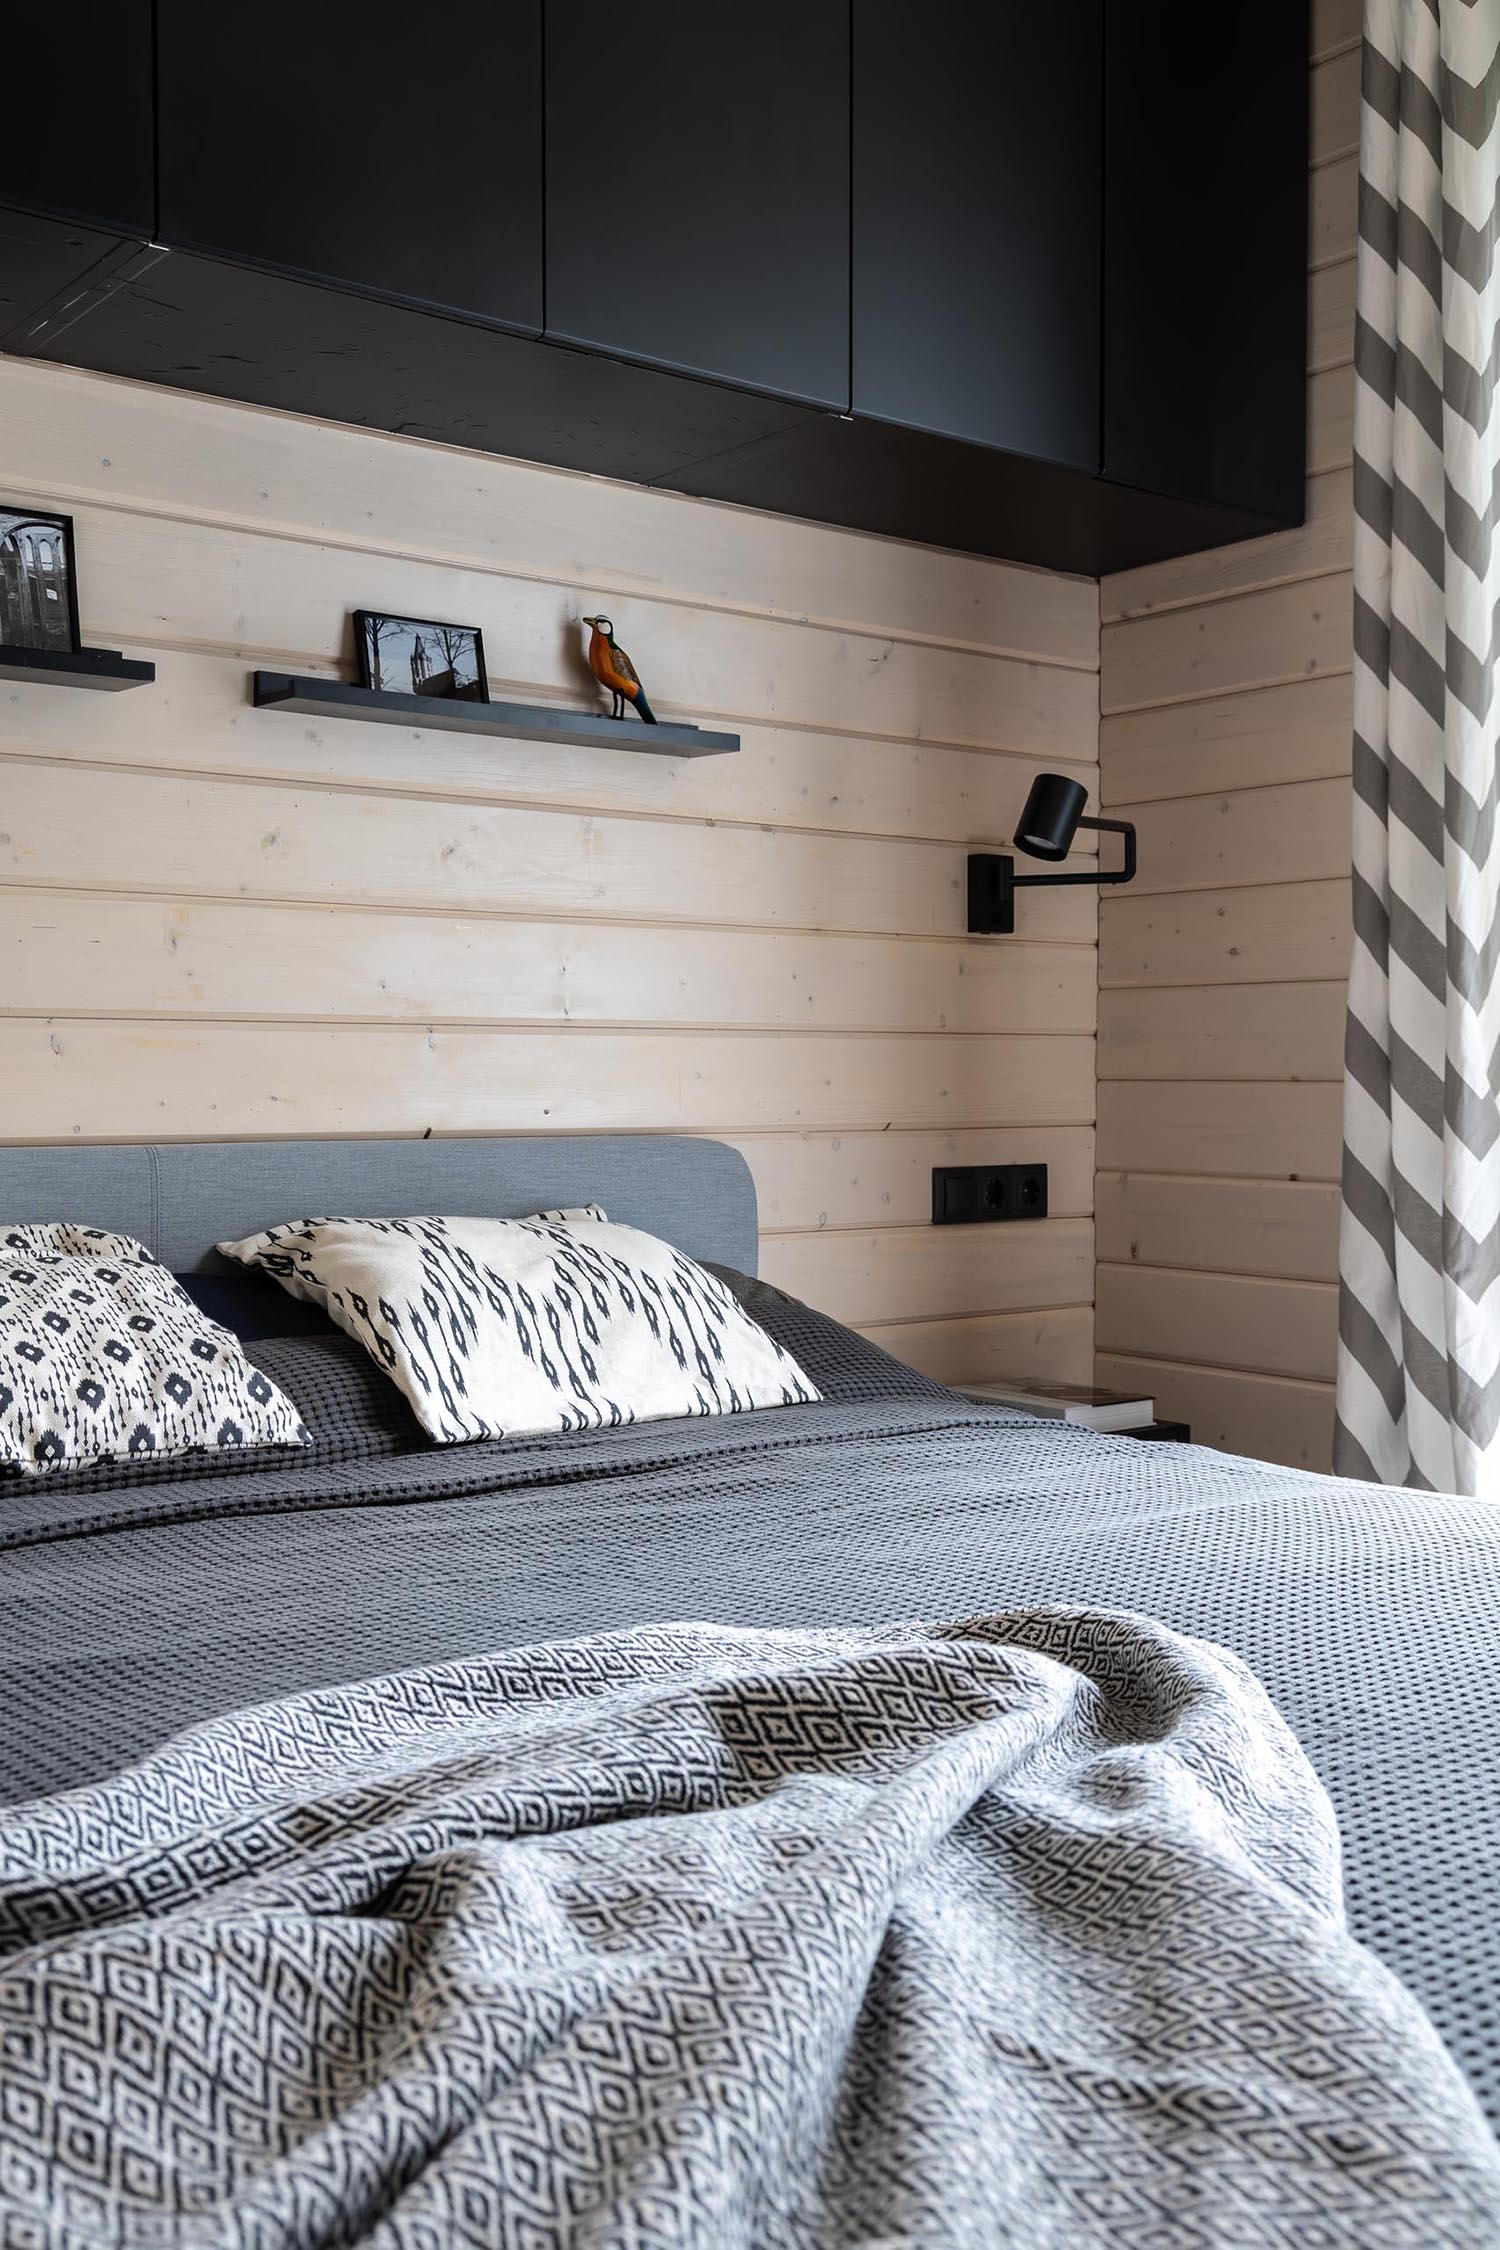 A modern barn-inspired bedroom with tongue and groove wood siding and black accents.